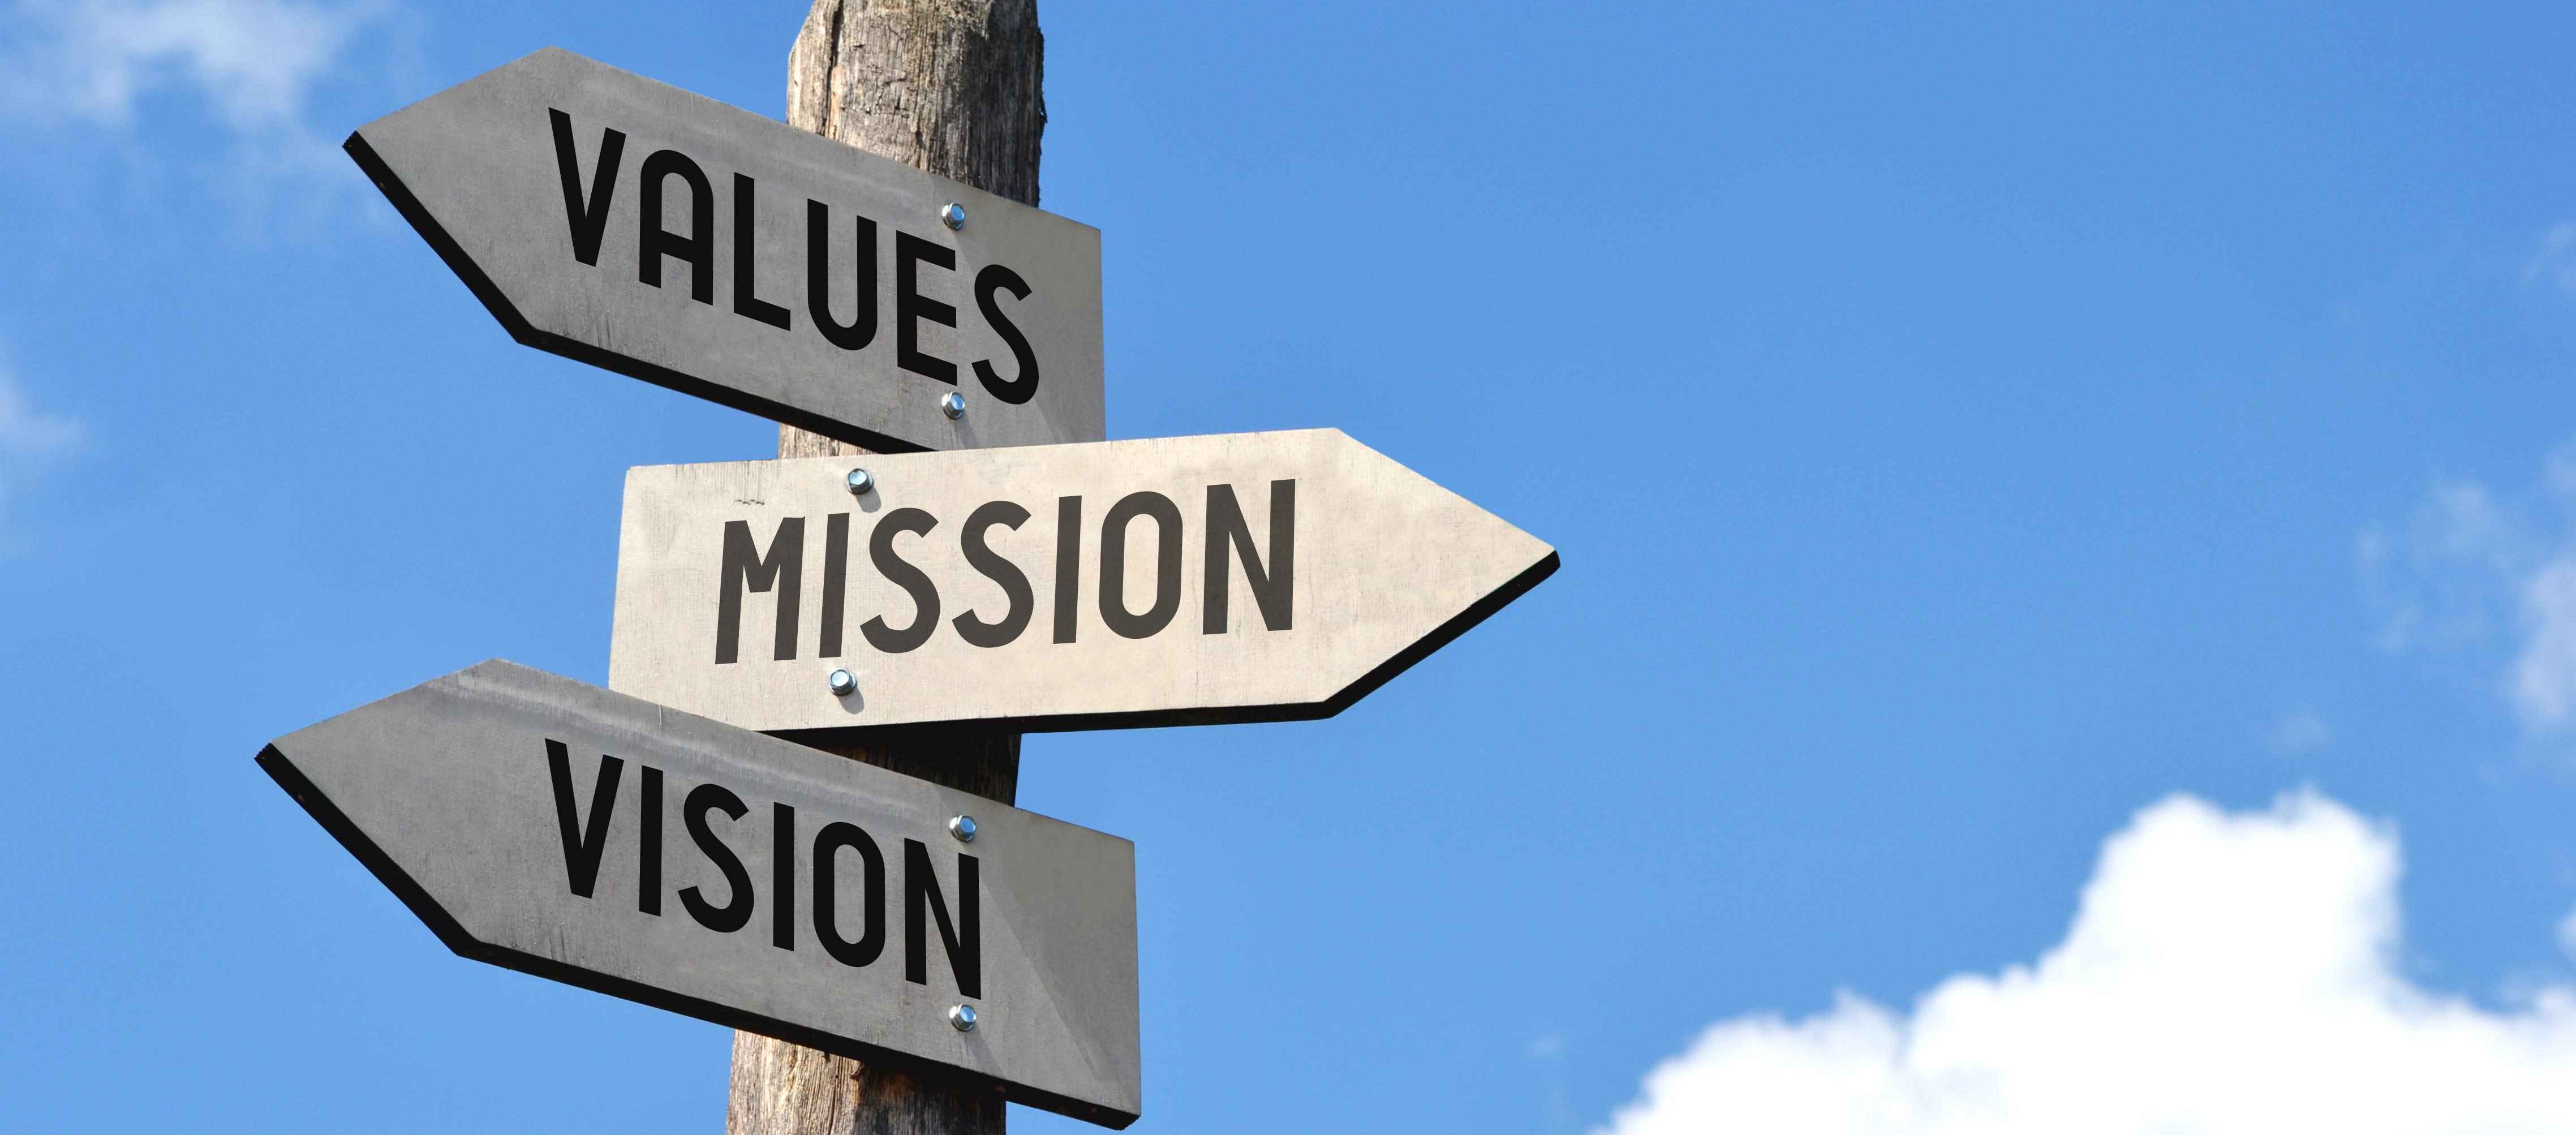 Values, Mission and Vision signs.